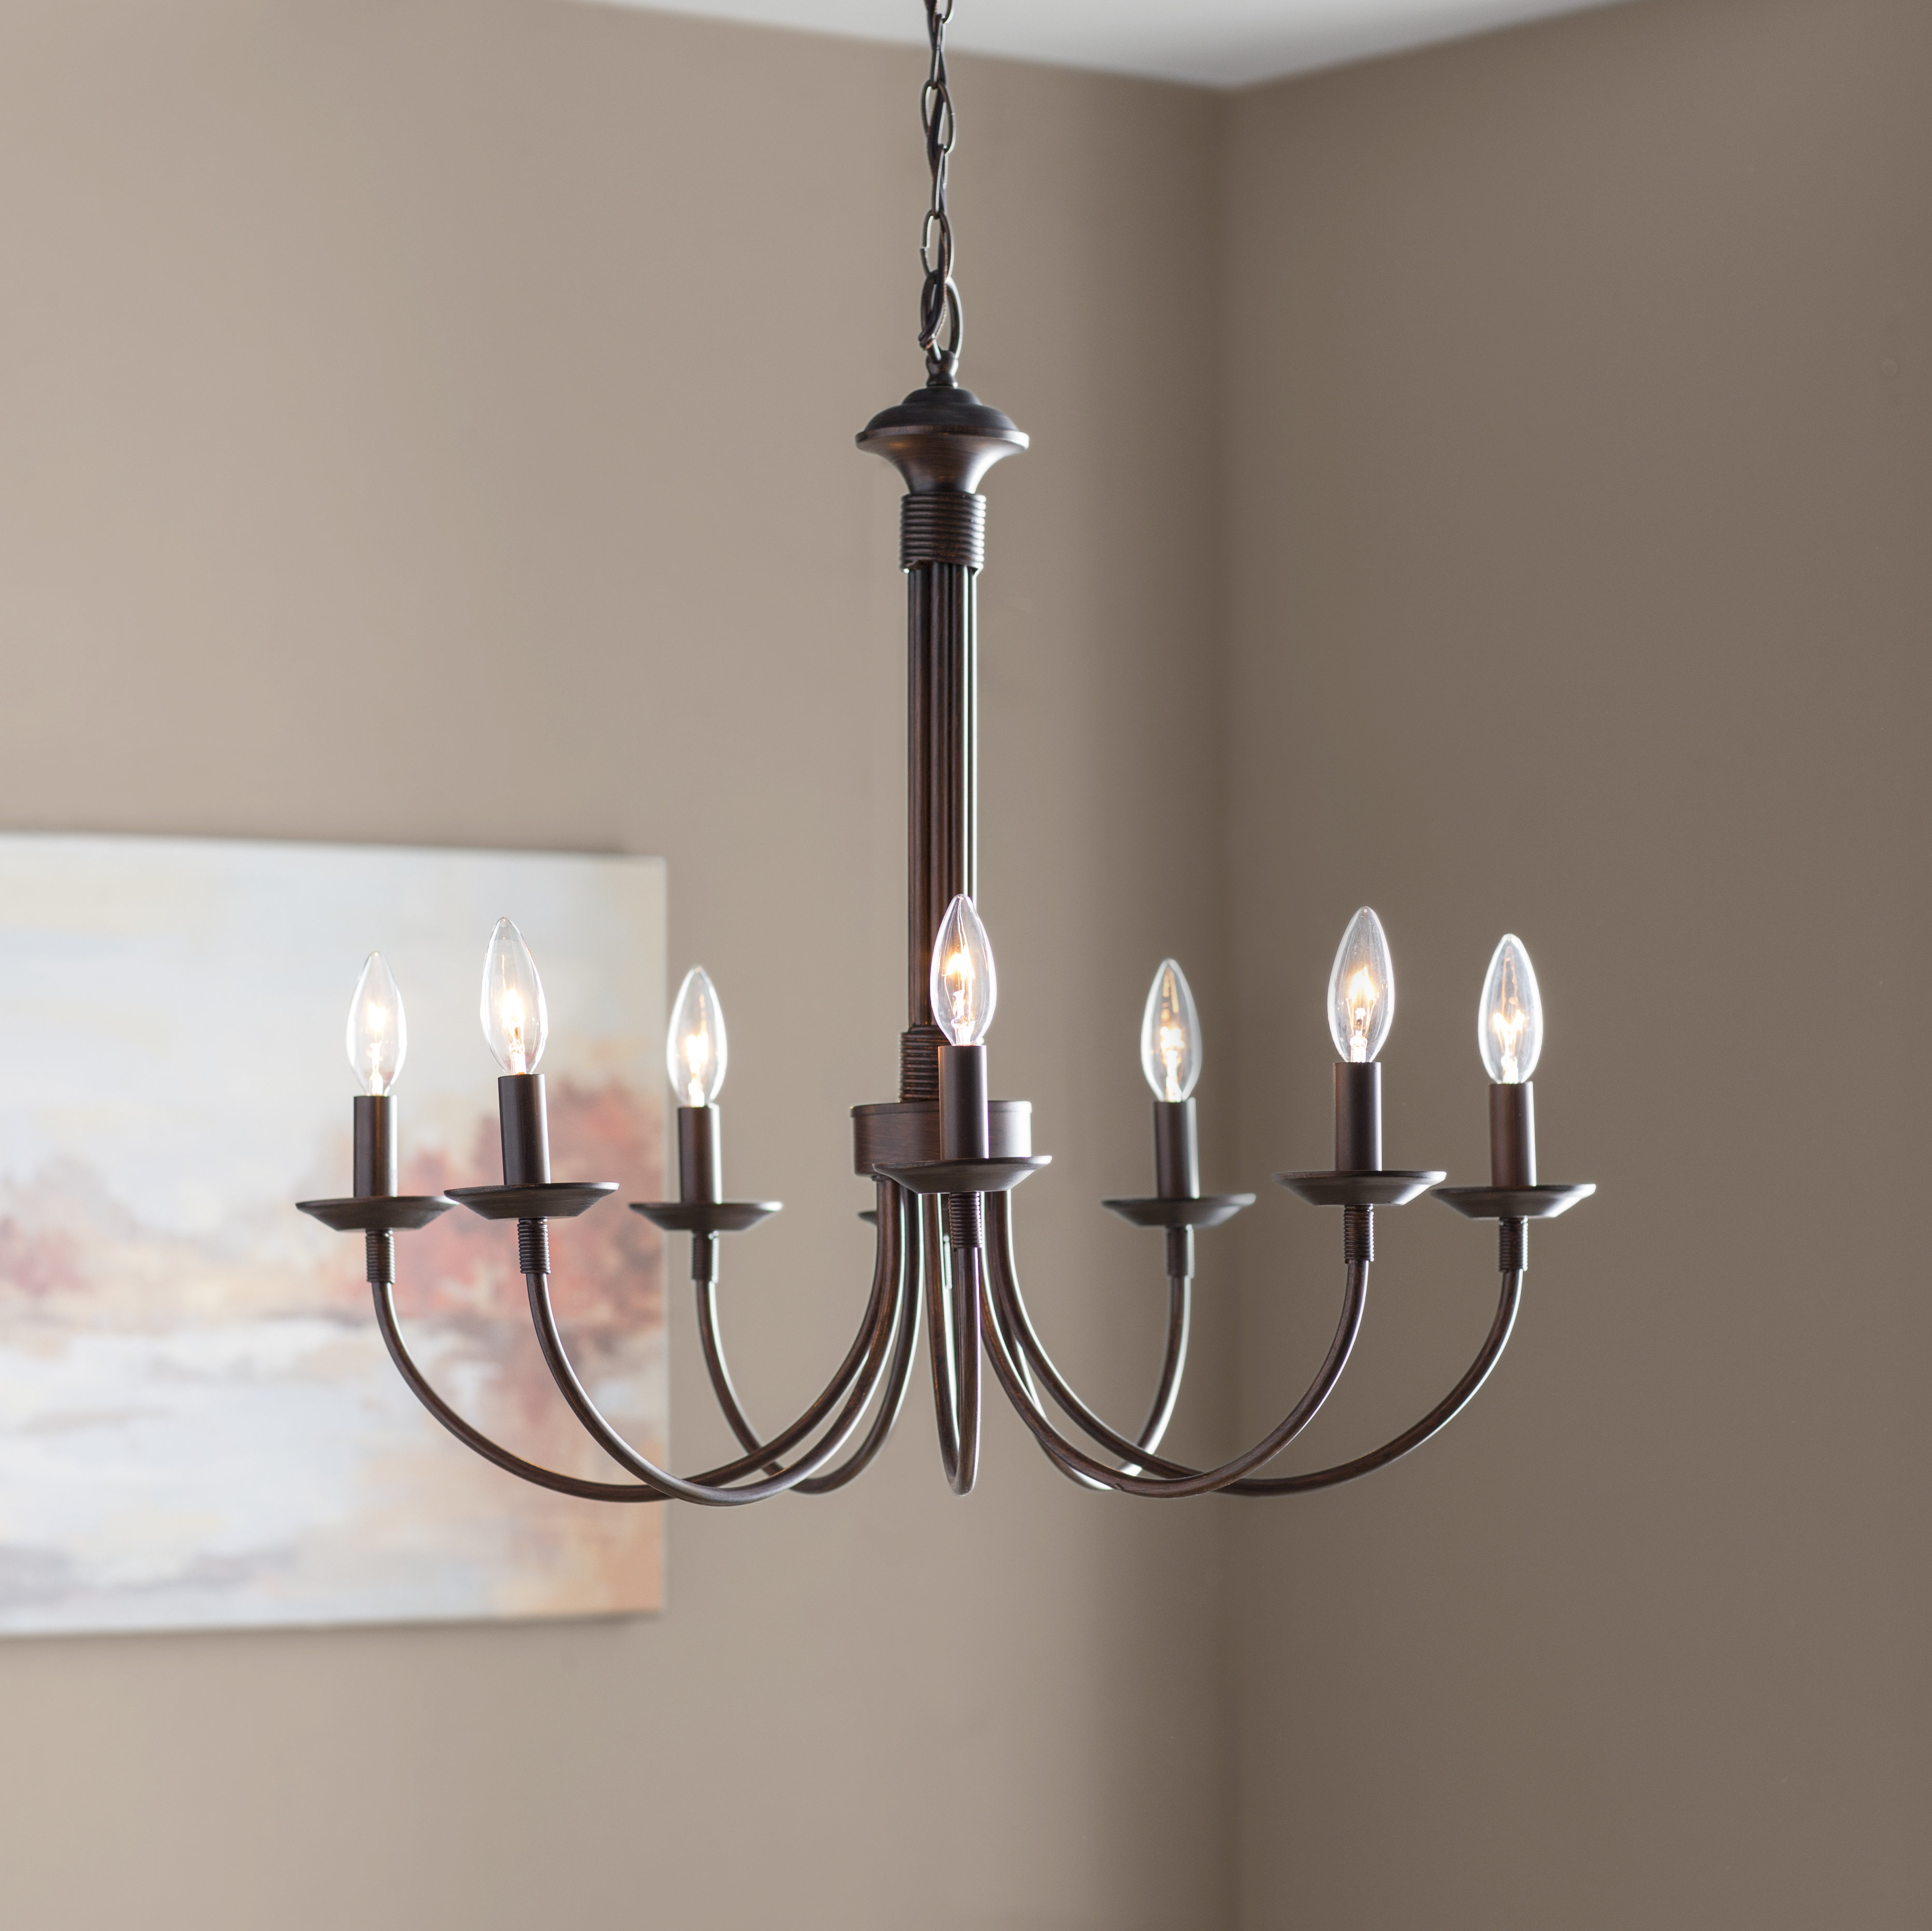 Most Recent Shaylee 8 Light Candle Style Chandelier Intended For Shaylee 5 Light Candle Style Chandeliers (View 8 of 20)